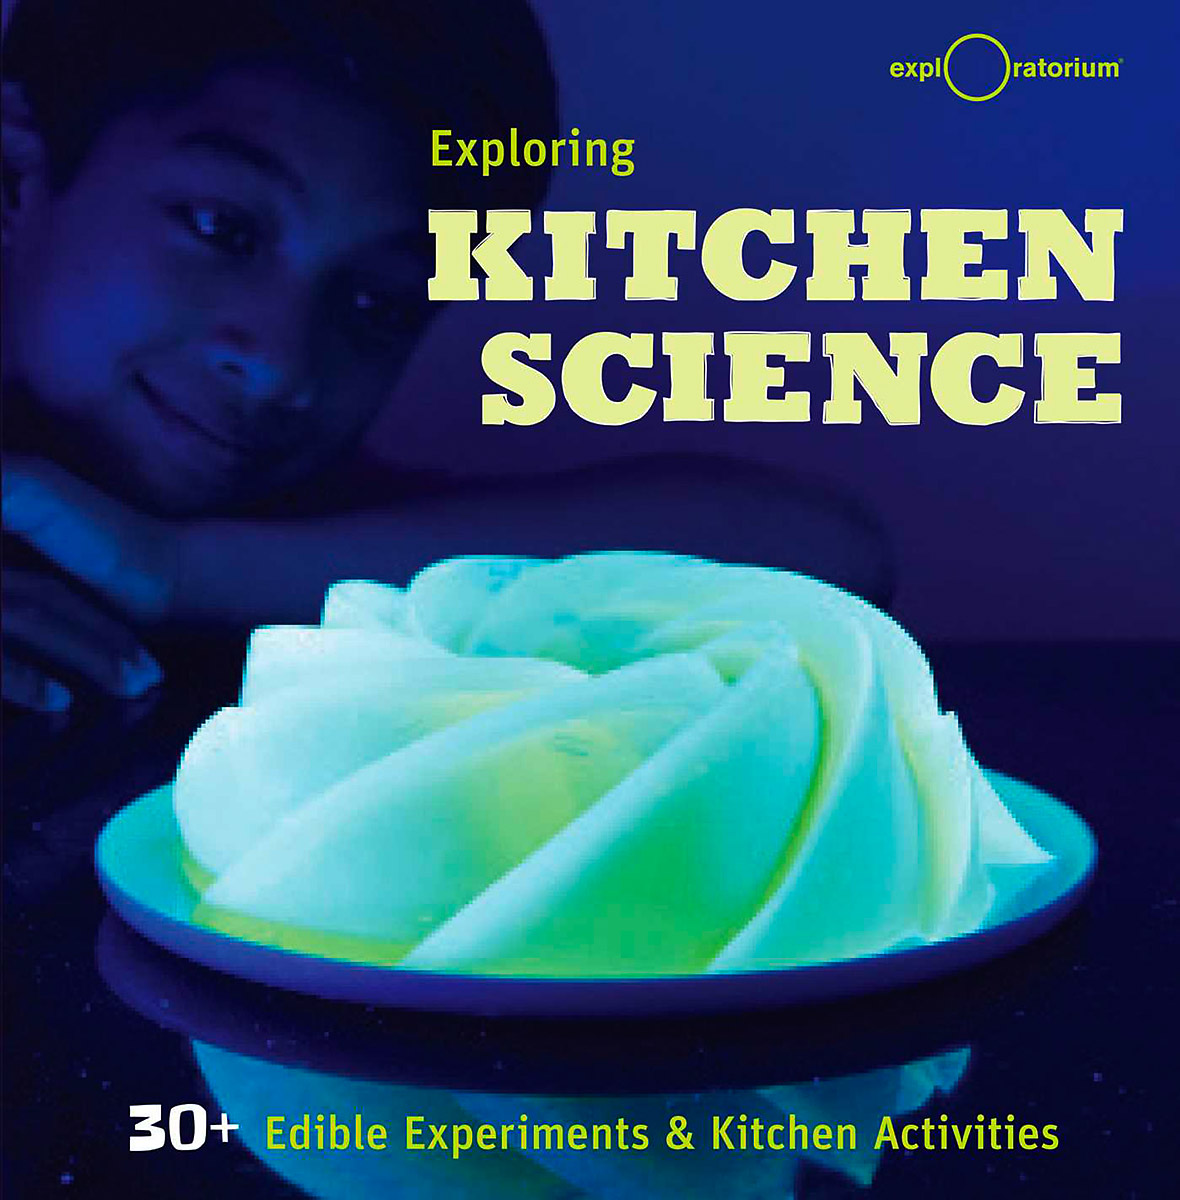 exploratorium-exploring-kitchen-science